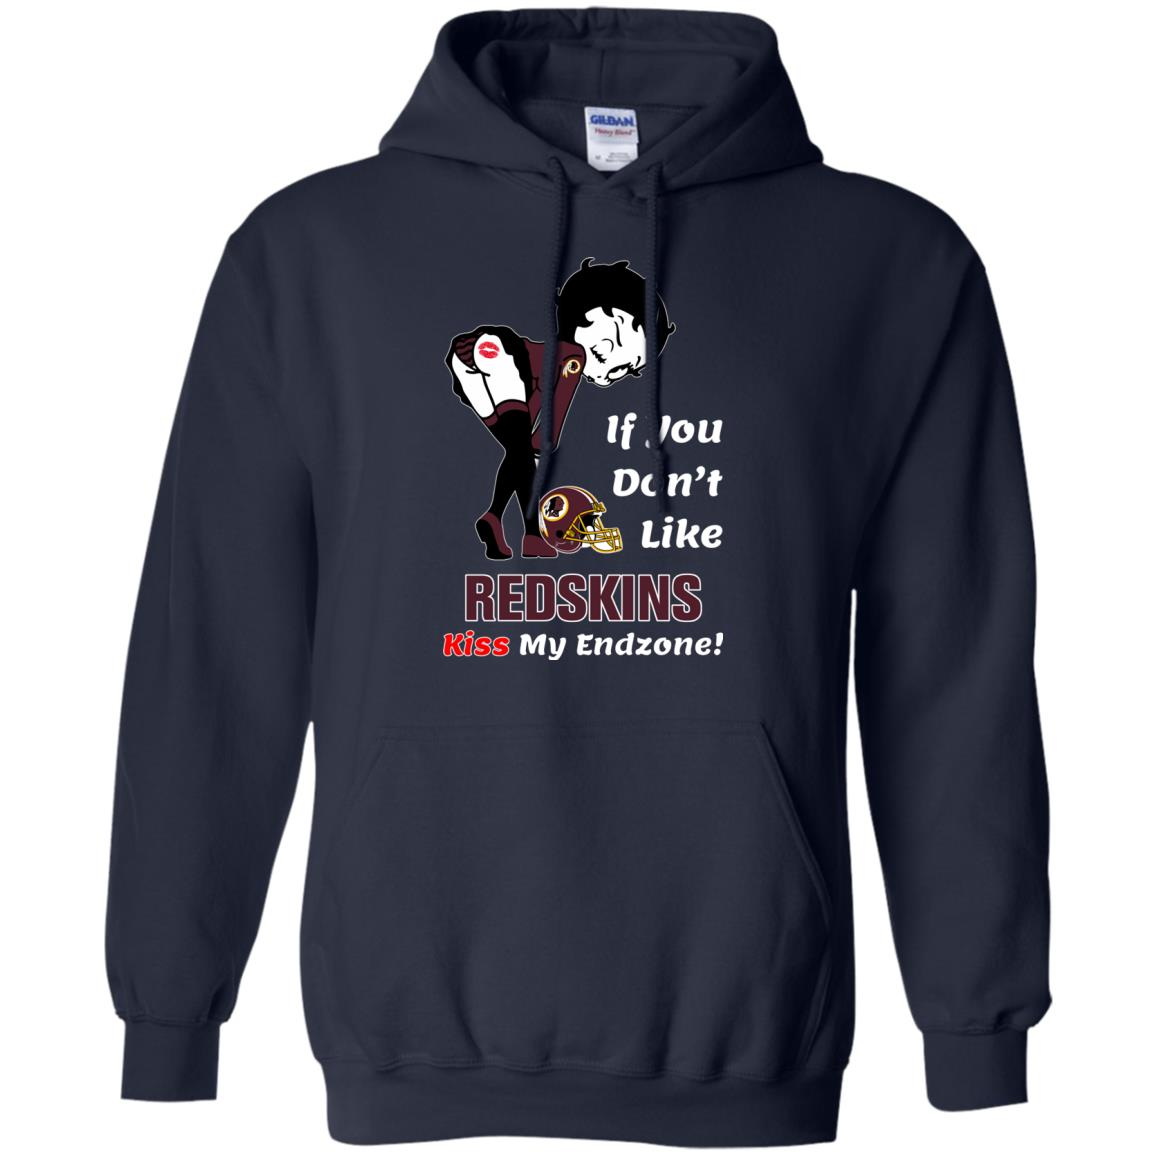 image 464px Betty Boop If you don't like Redskins kiss my endzone t shirt, hoodies, tank